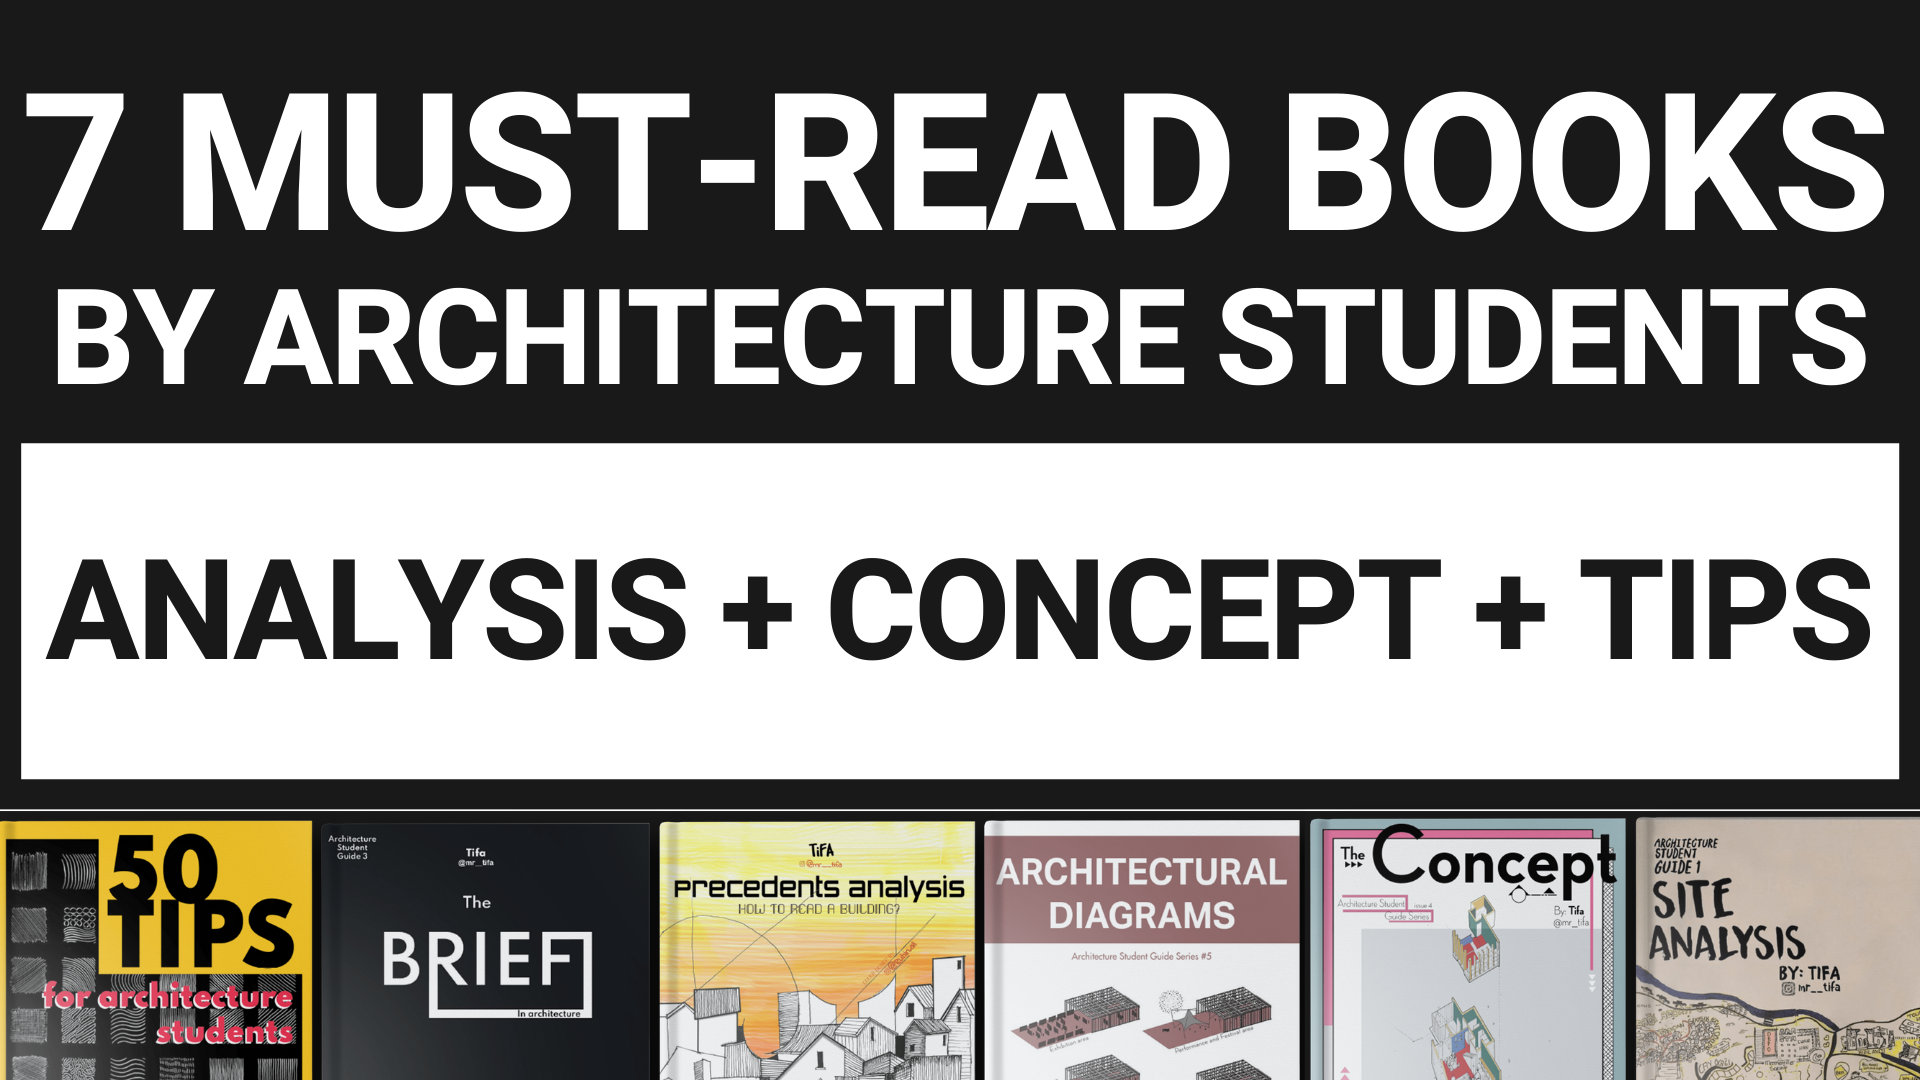 7 Must-Read Books by Architecture Students